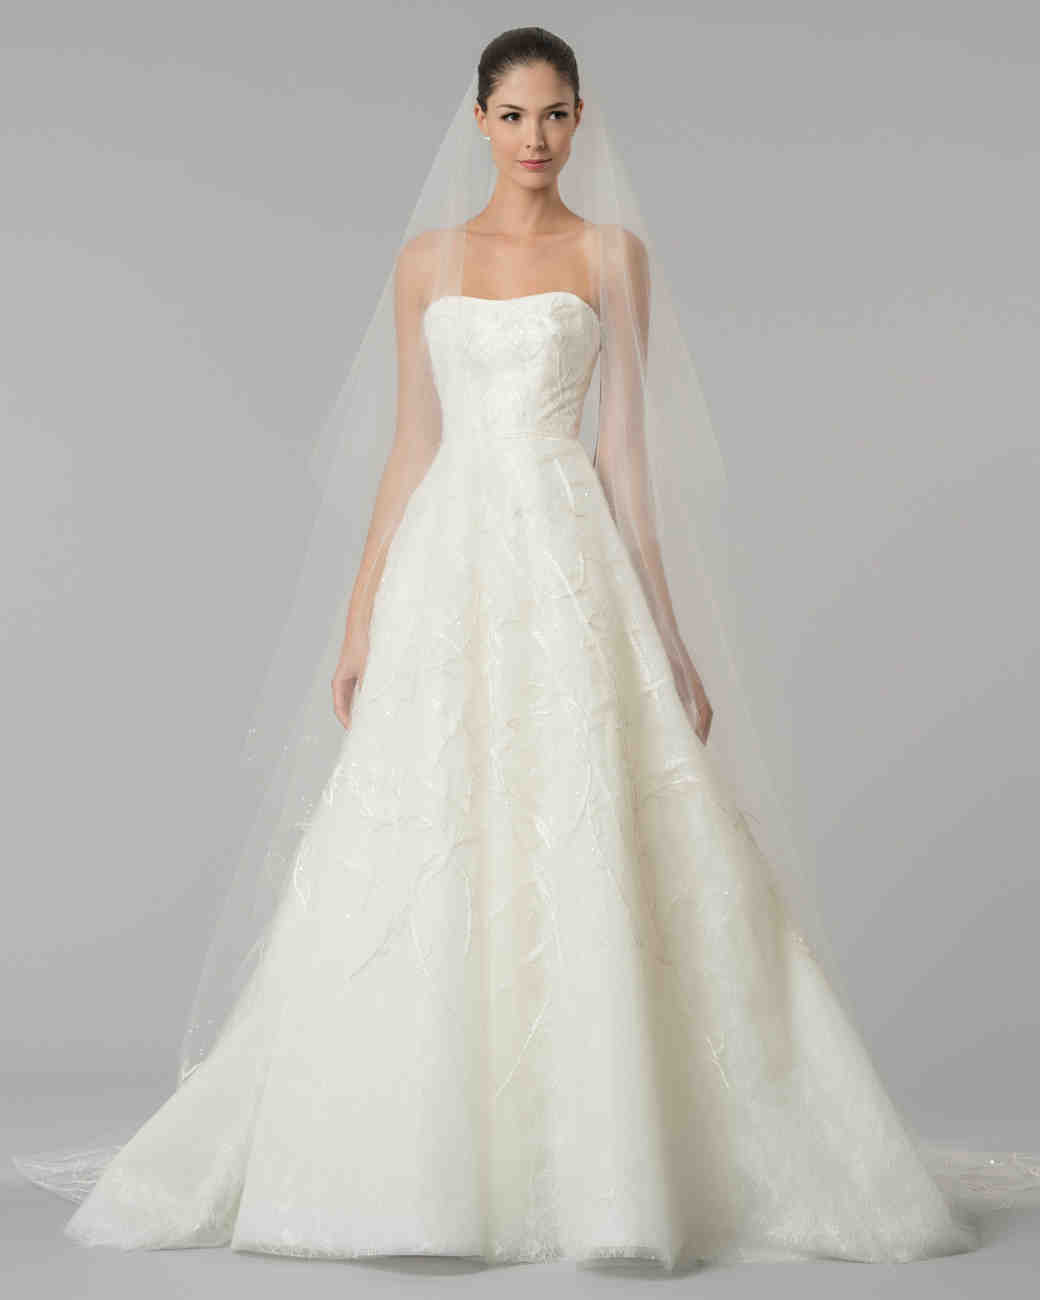 Wedding Gowns For 2015: Carolina Herrera Fall 2015 Bridal Collection